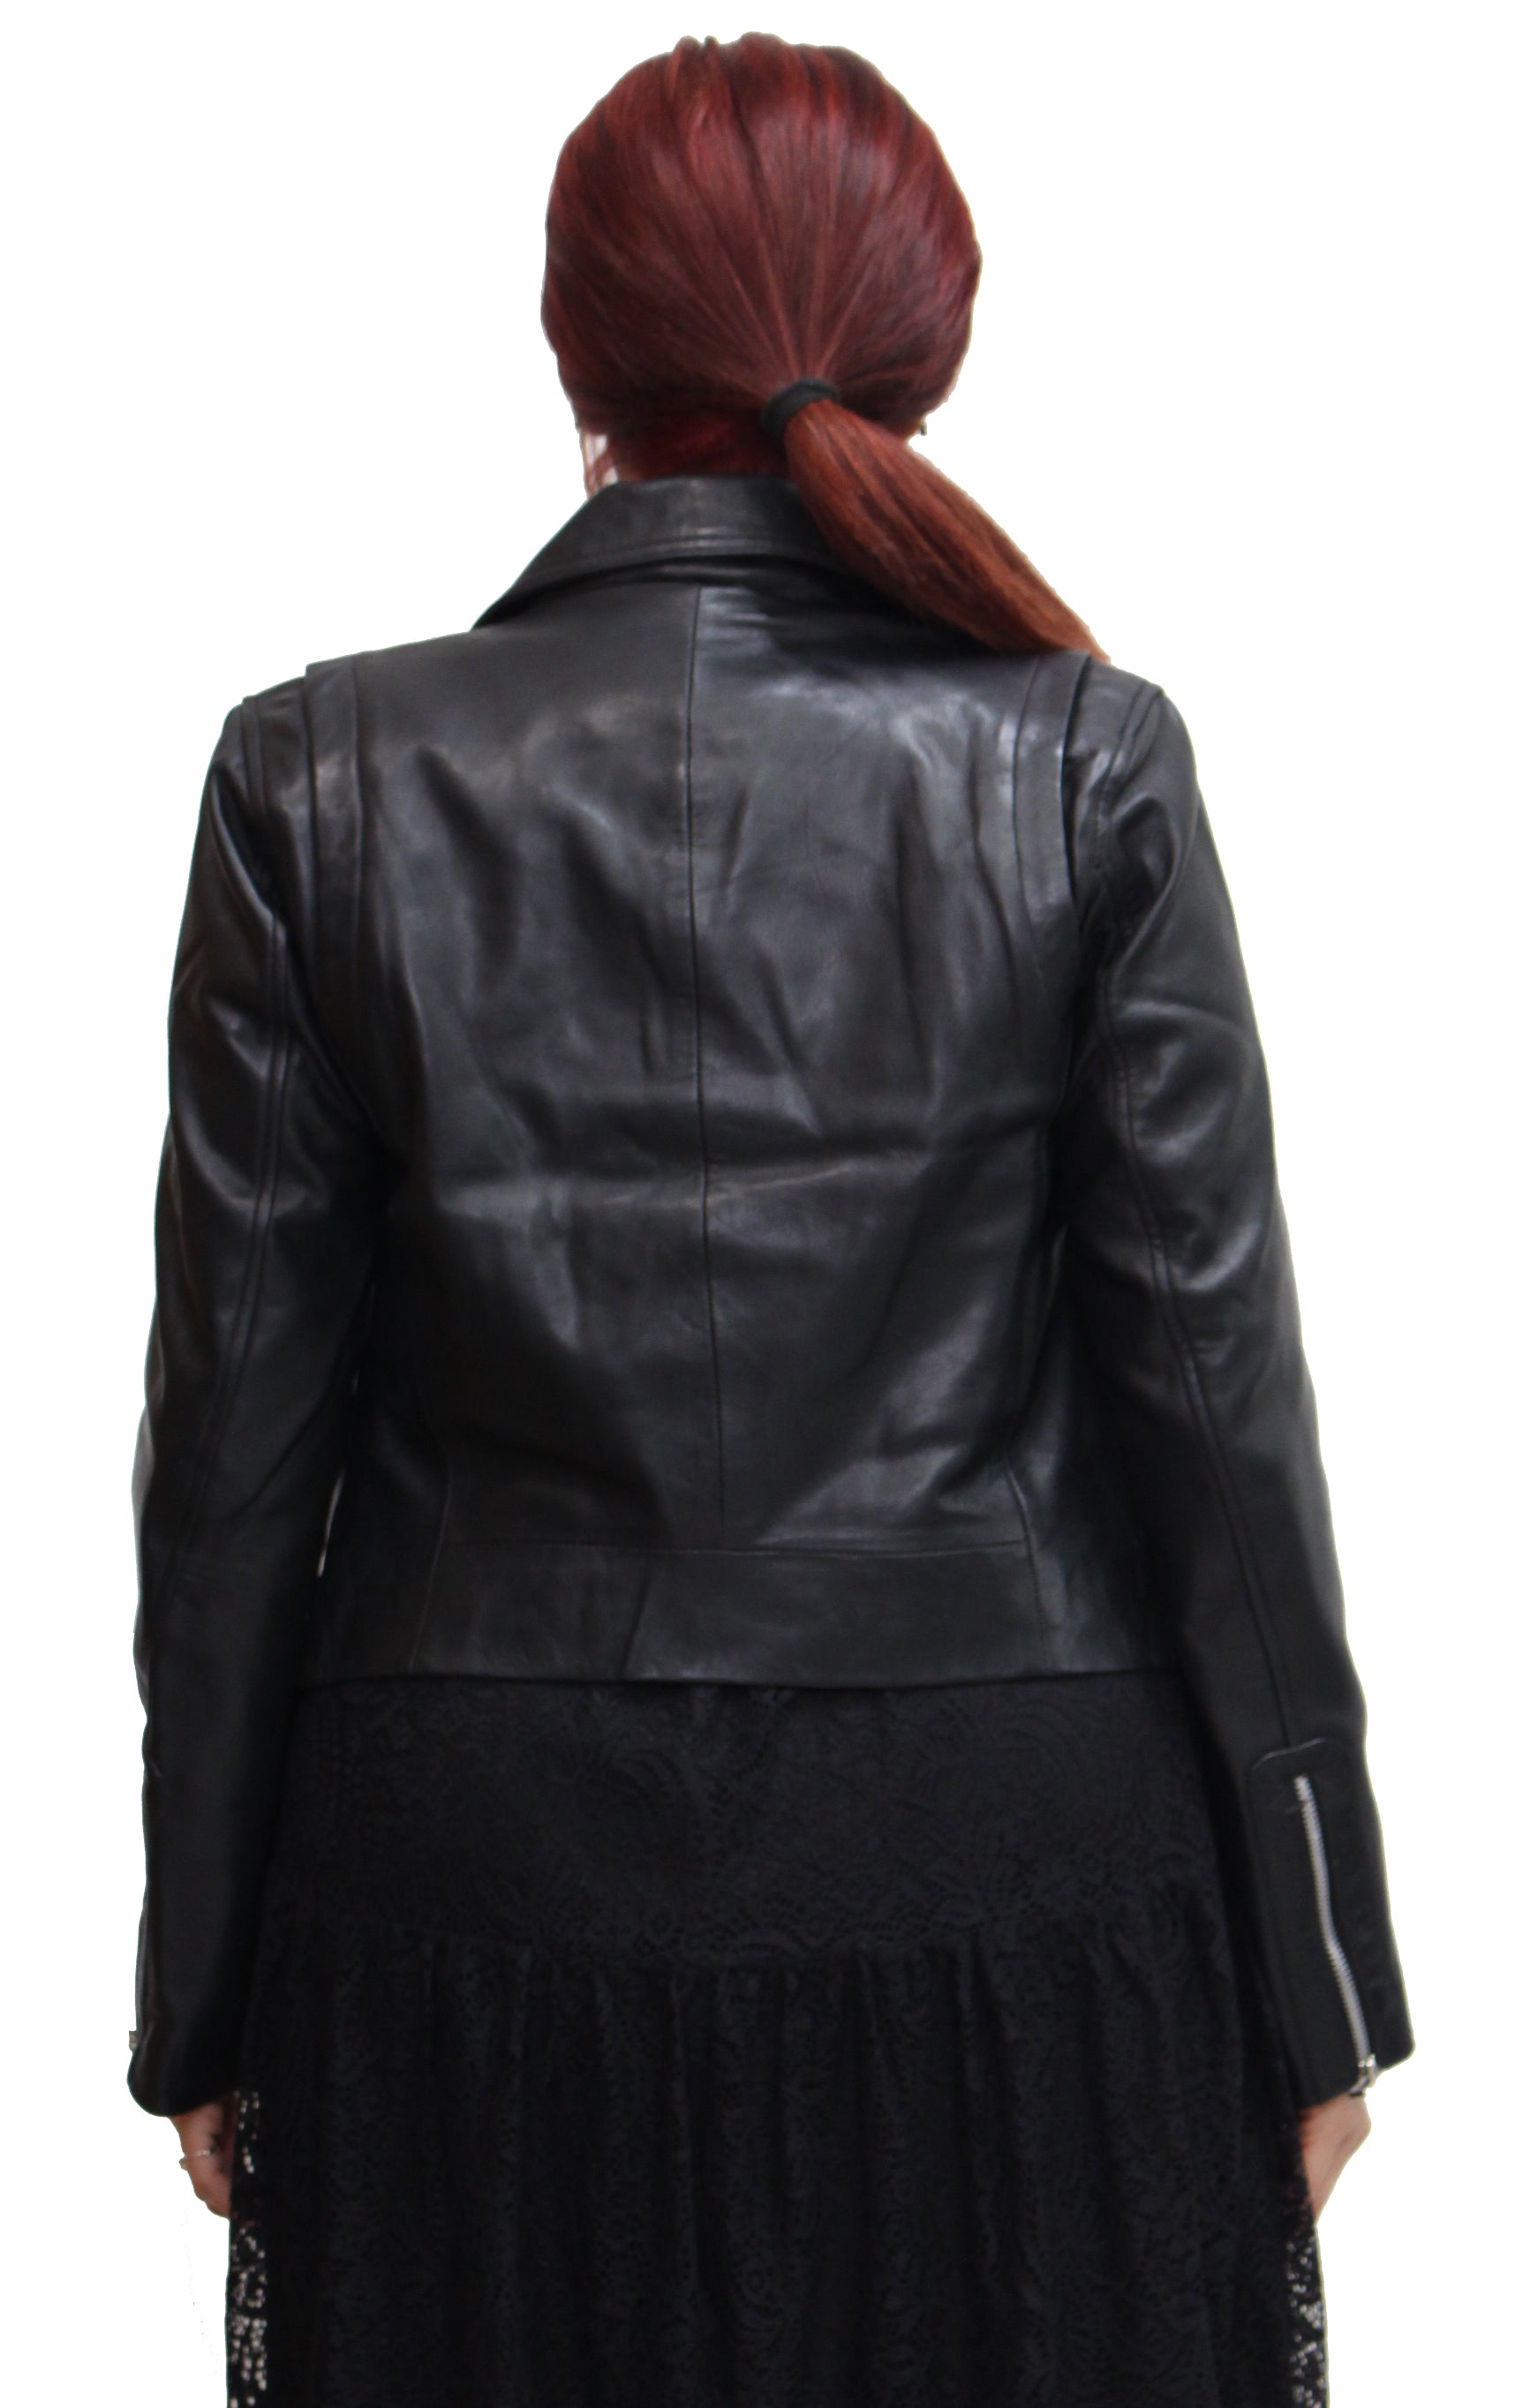 Womens Lightweight Real Leather Brando Style Cross Zip Biker Jacket. Available in Black, Red and Brown